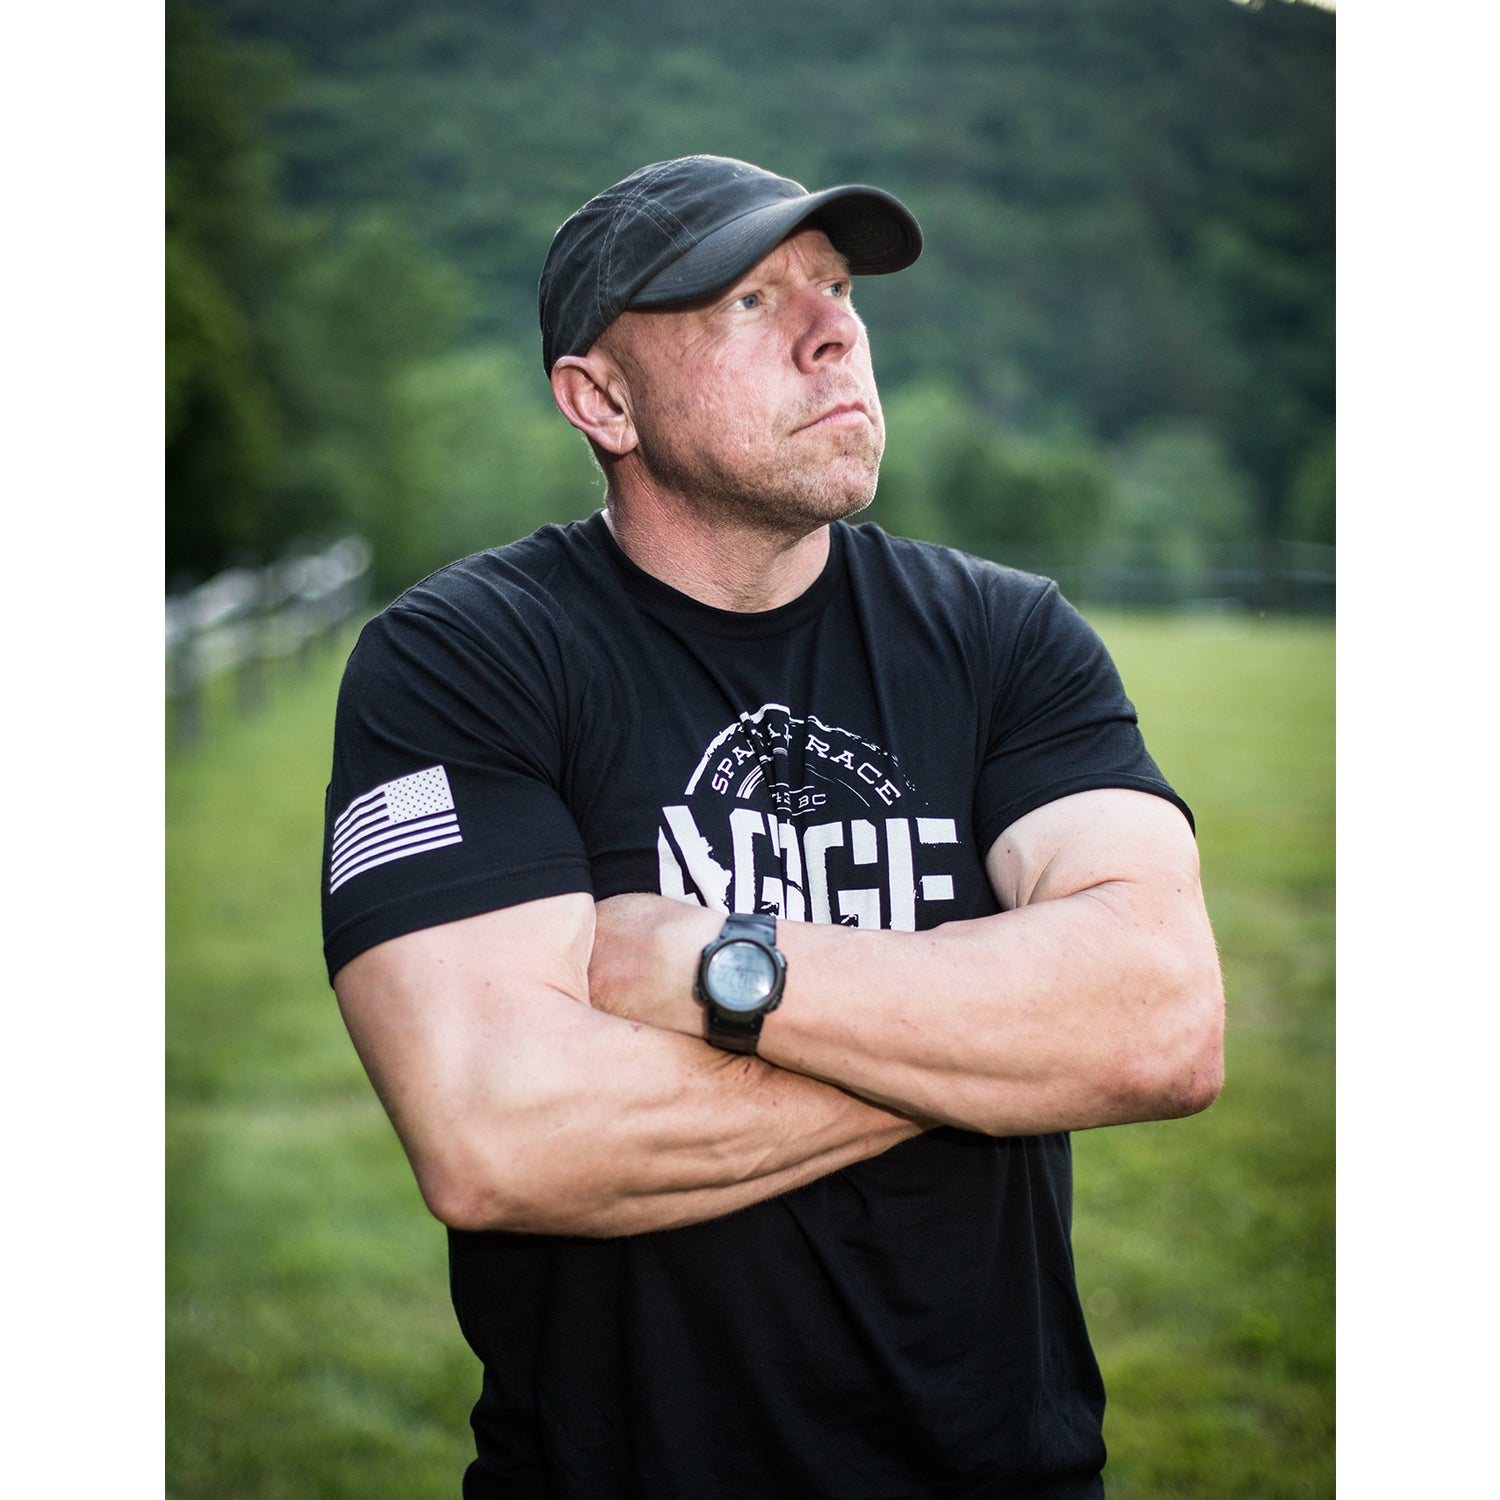 In 2014, Mark Peterson was diagnosed with a life-threatening cancer that required surgery and chemotherapy. But that didn't stop him. In 2015, Peterson ran 22 Spartan races, all while undergoing treatment. Peterson has also achieved a Spartan Trifecta, which is earned by completing a five mile sprint course, a 10 mile super course, and a 15 mile beast course all in a calendar year.